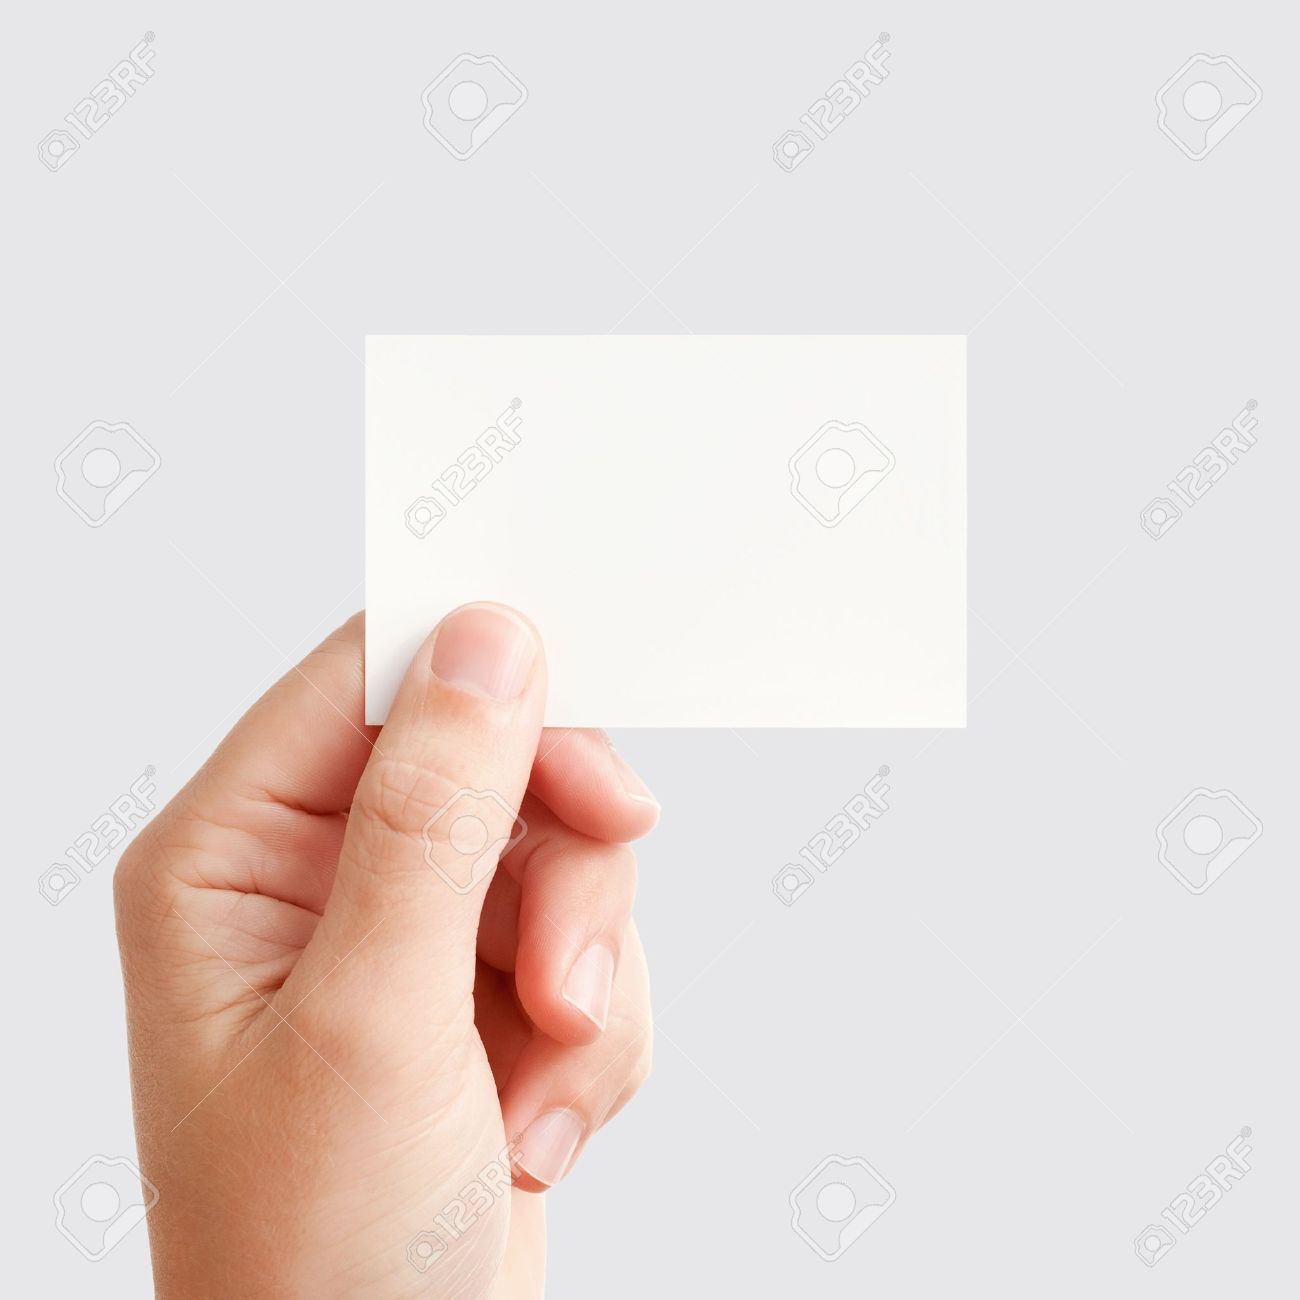 Businessman's hand holding blank white paper business card, closeup isolated on square gray background Stock Photo - 9078033